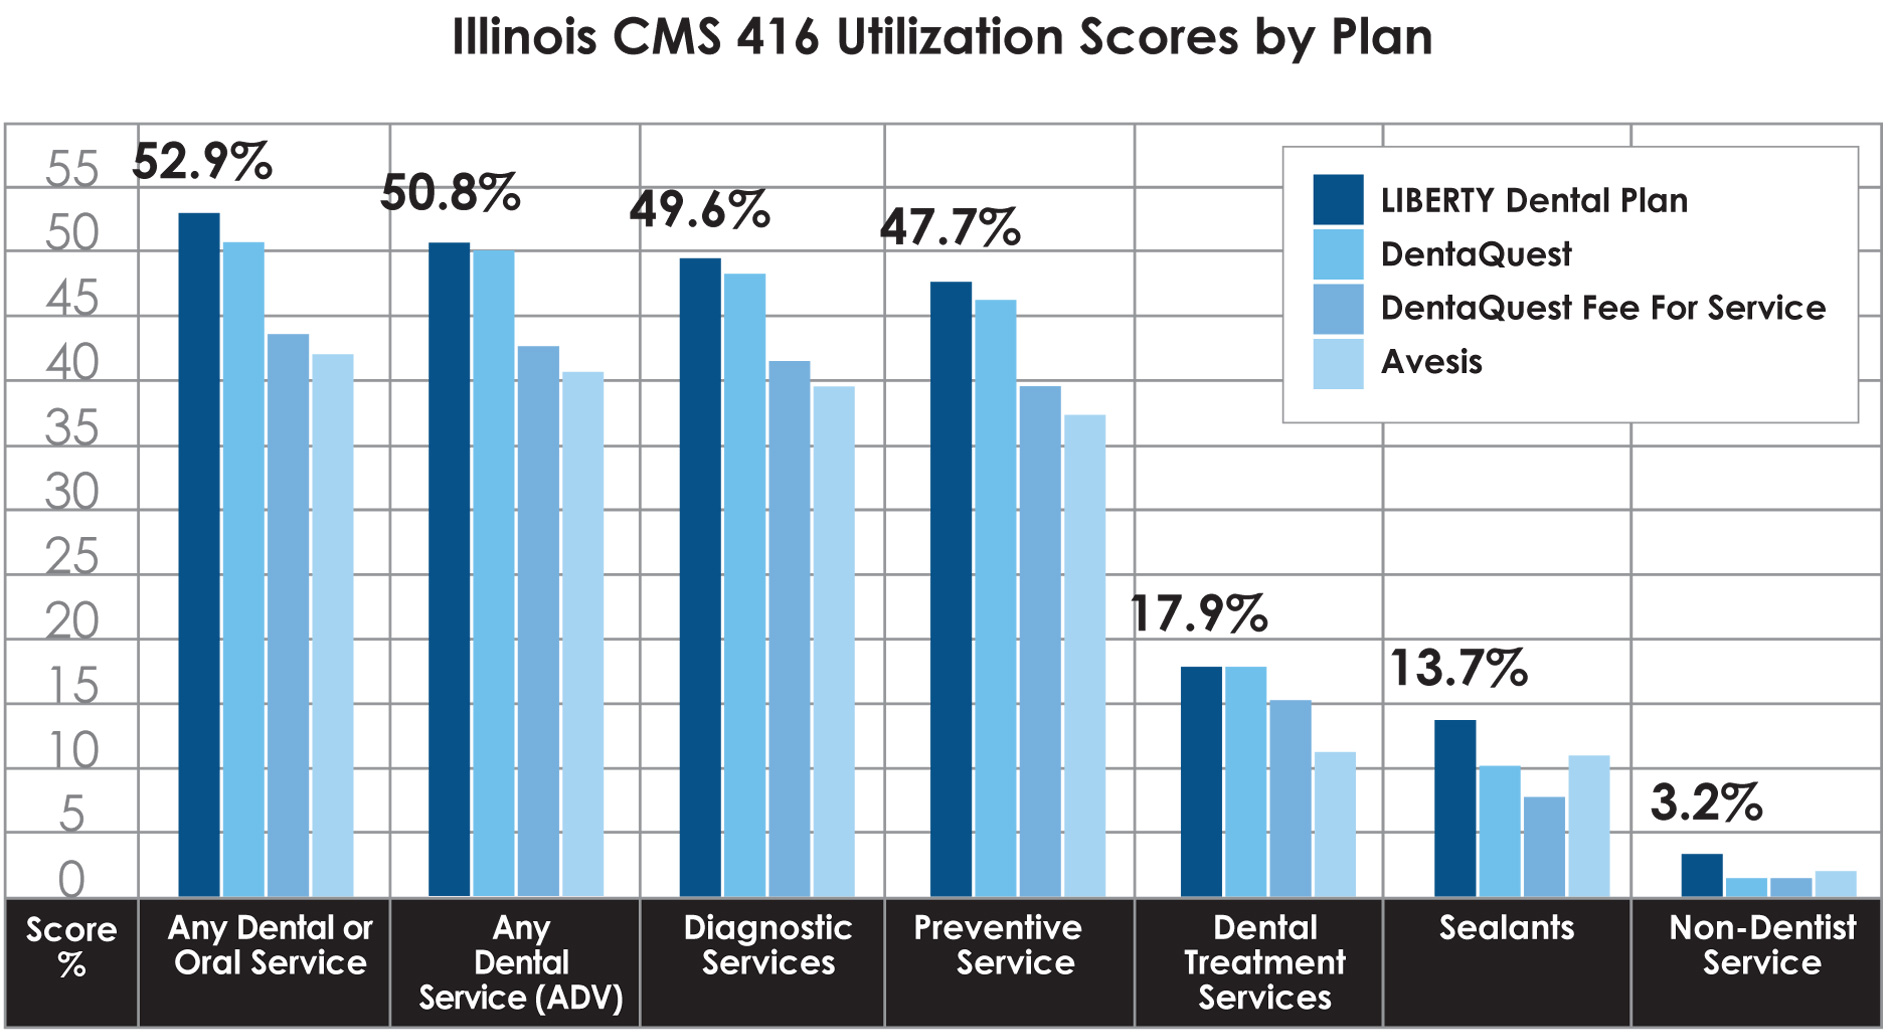 IL CMS 416 utilization scores by plan graph